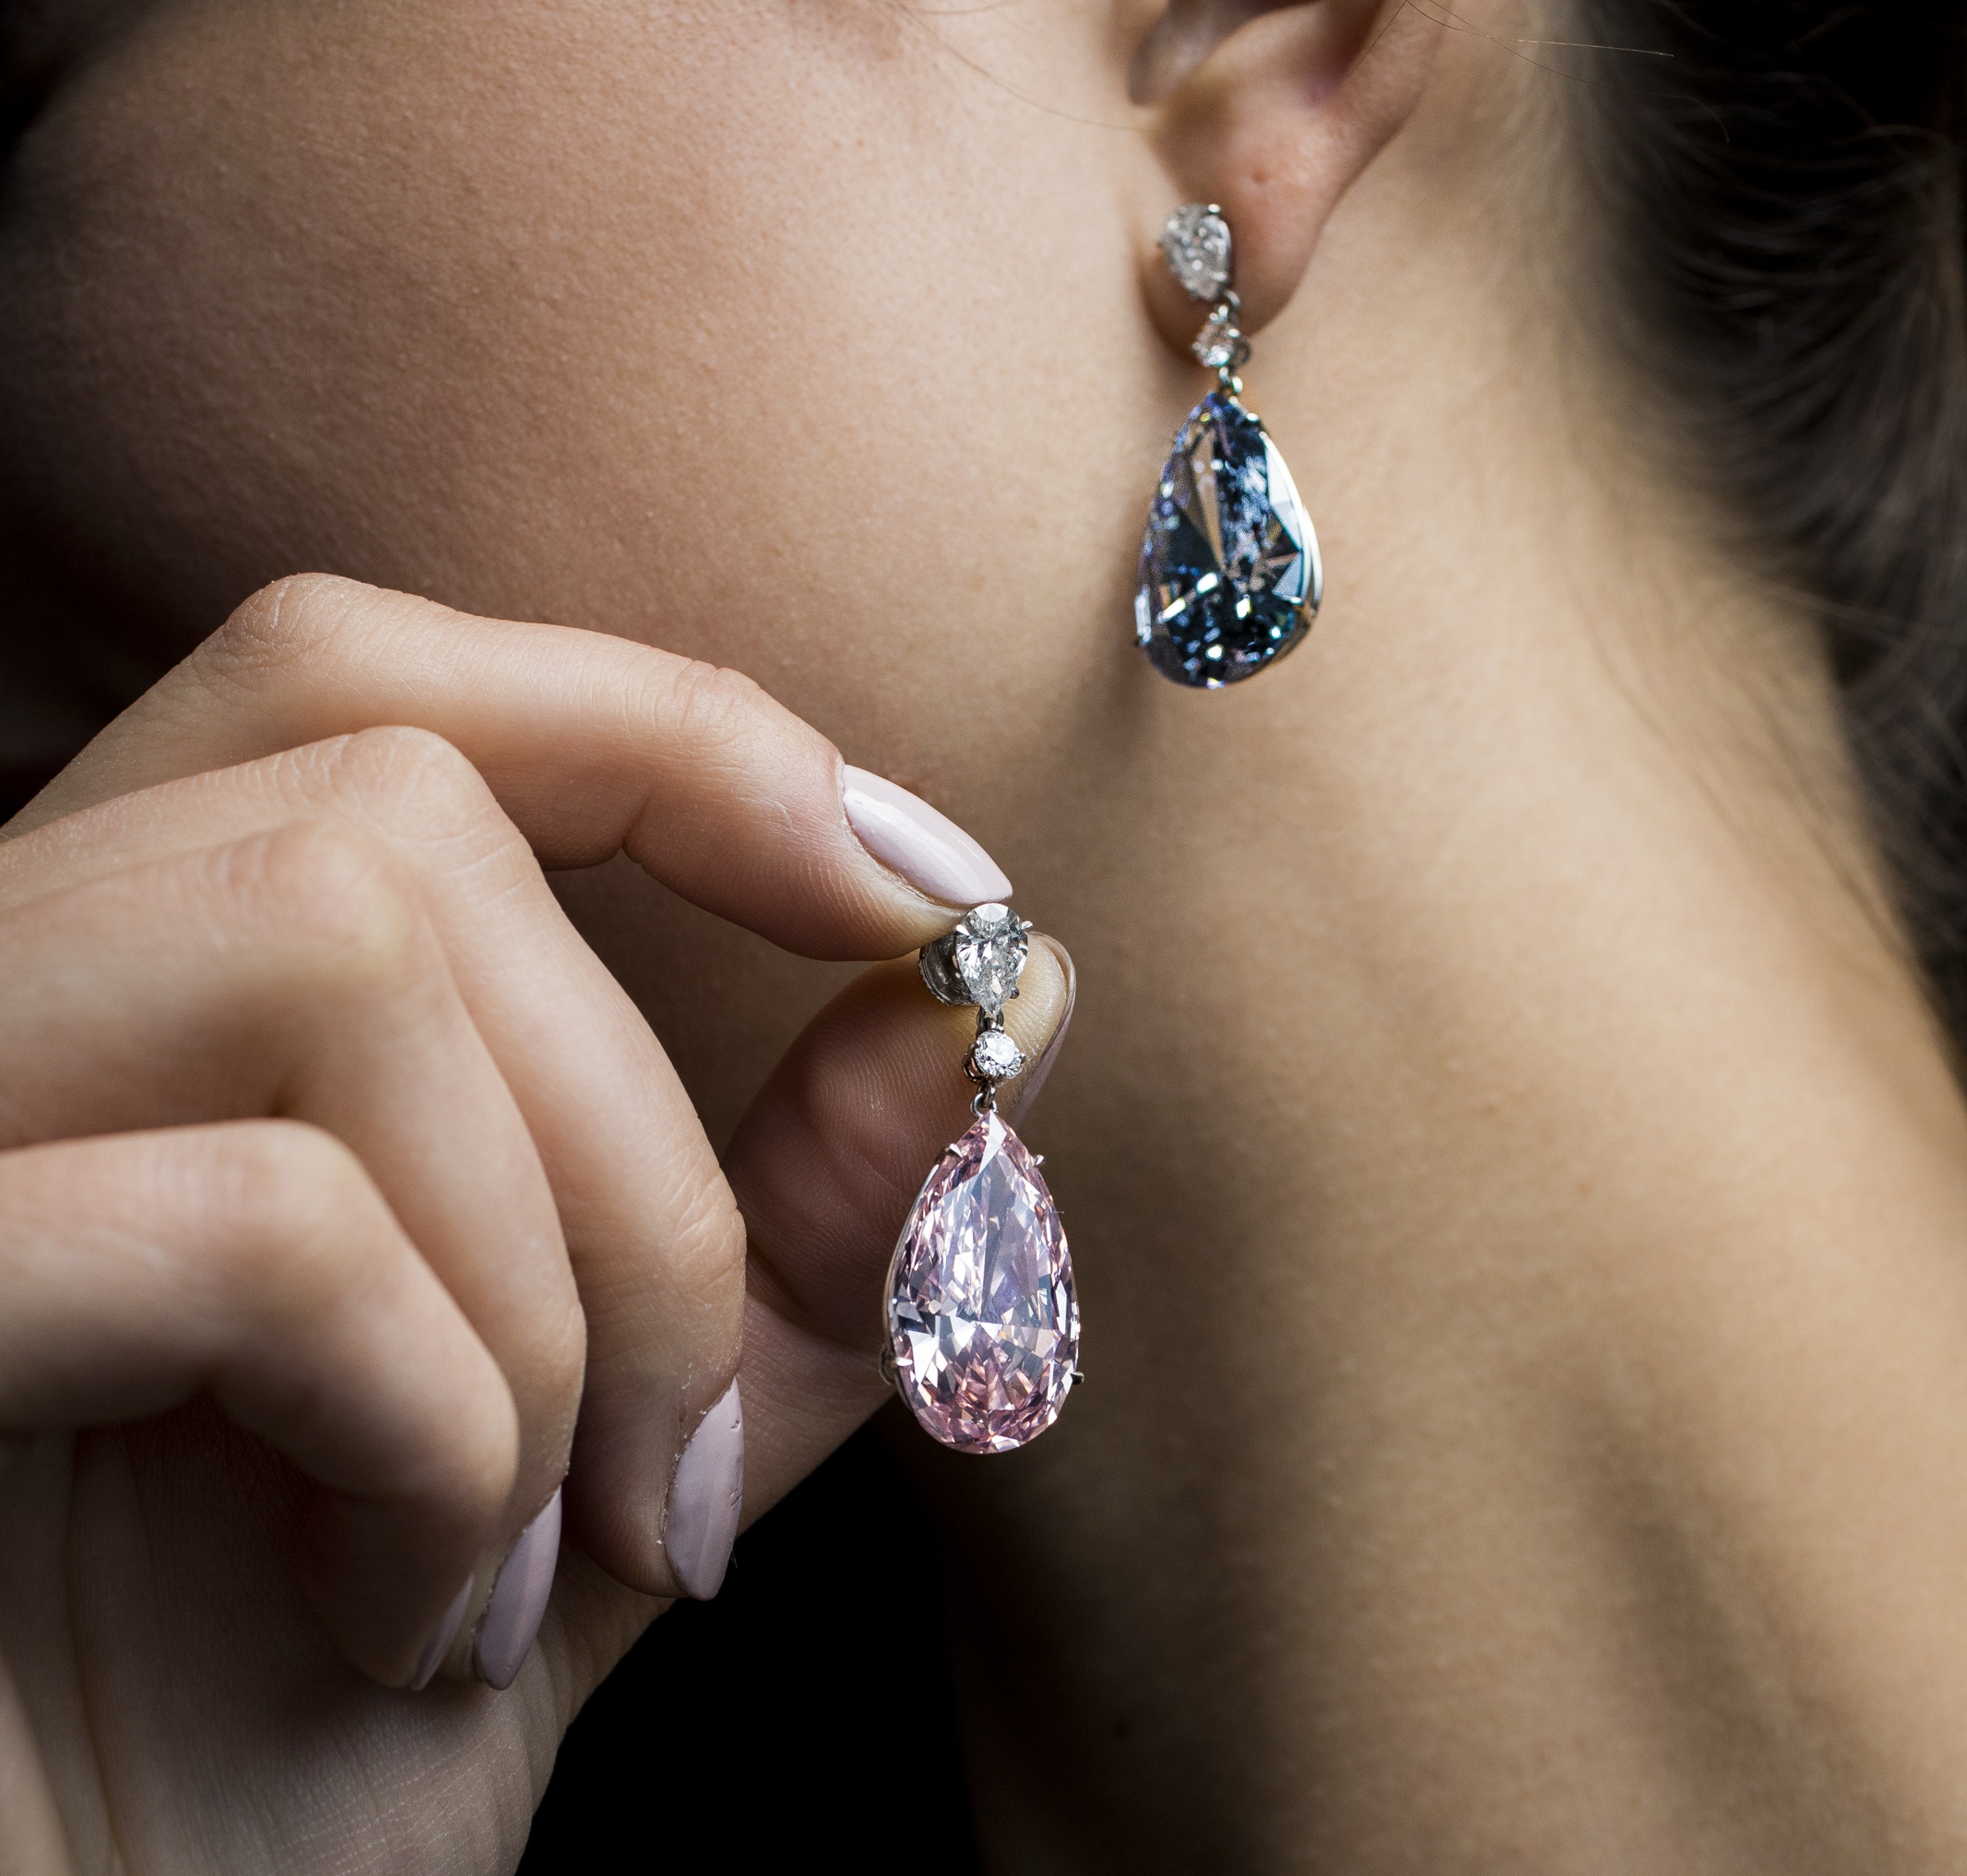 A Sotheby's employee displays the Apollo blue diamond and the Artemis pink diamond earrings during a preview at the Sotheby's, in Geneva, Switzerland. Sotheby's sold a pair of pear-shaped diamond earrings at a hammer price of about $51 million Tuesday, May 16, 2017, though the 14.54-carat flawless Fancy Vivid Blue diamond that was the auction's highlight fell short of the expected range.   Image courtesy of Sotheby's